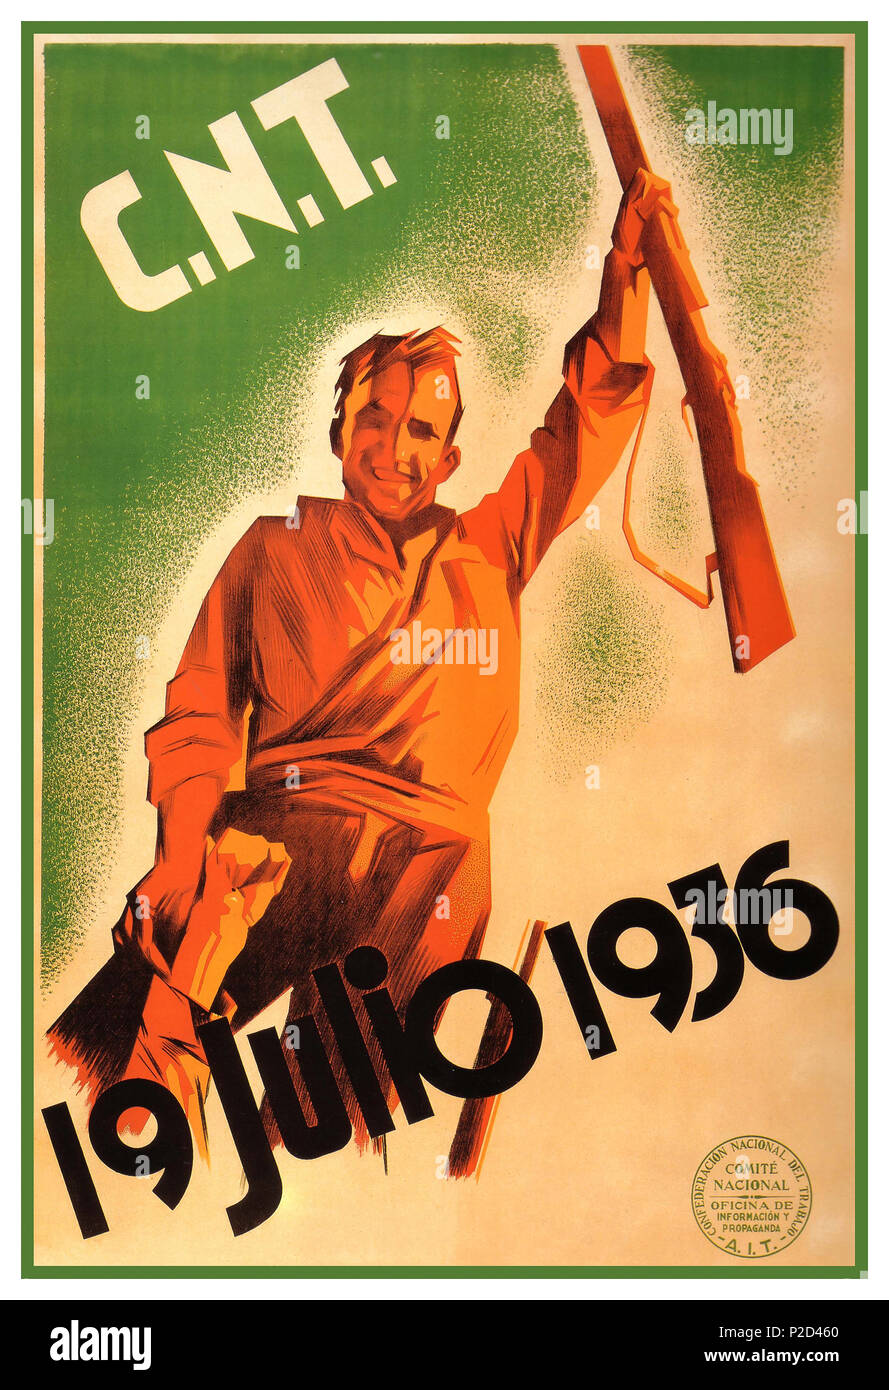 Vintage 1930's Propaganda Spanish Poster July 19, 1936 marks the 79th anniversary of the beginning of the Spanish Revolution, when anarchists across Spain took up arms against the reactionary Spanish military forces that were attempting to take over Spain. What ensued was a bloody civil war and the ultimate defeat of the Spanish anarchists three years later, as a result of an arms embargo, Communist treachery and a fascist military machine fuelled by weapons and military expertise from Nazi Germany and Fascist Italy. - Stock Image